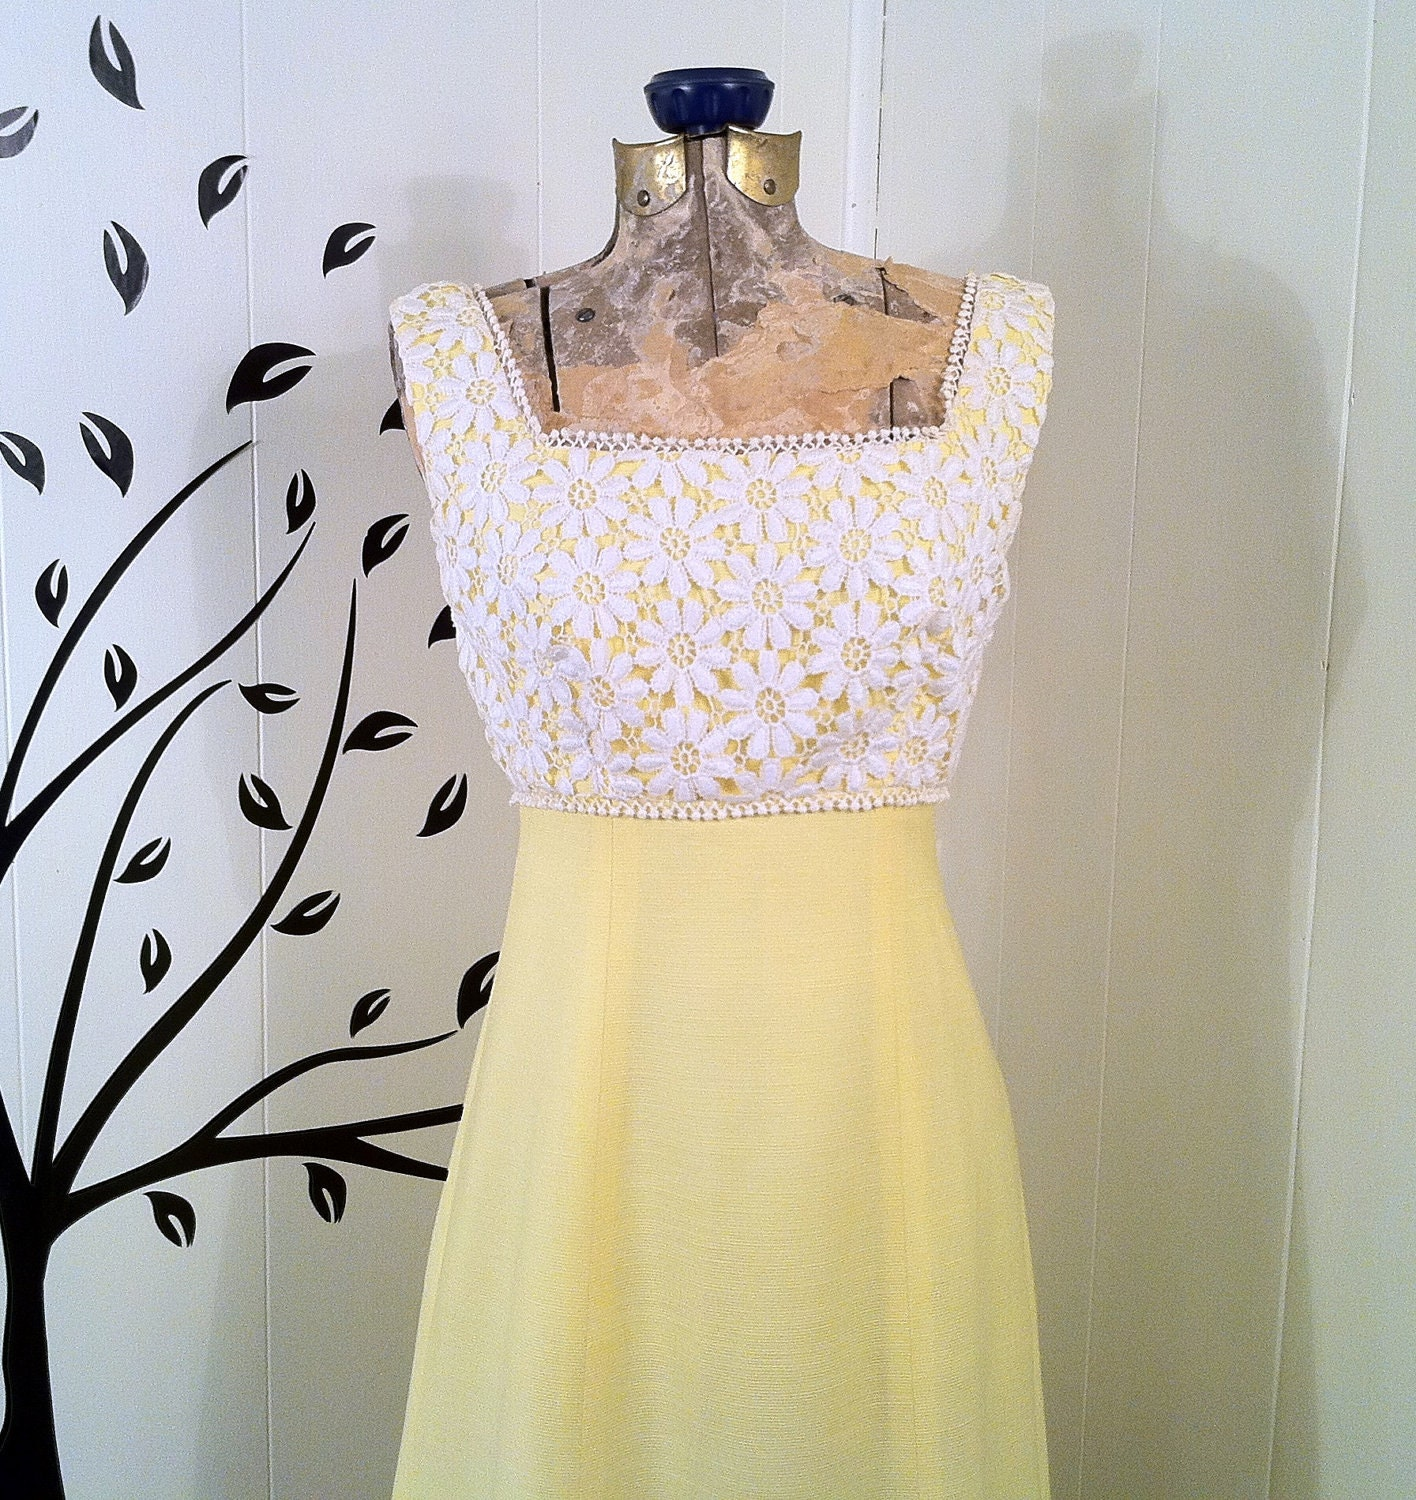 Vintage 1960s Yellow Cotton and Lace Gown with Attached Train, Bridal or Wedding Gown